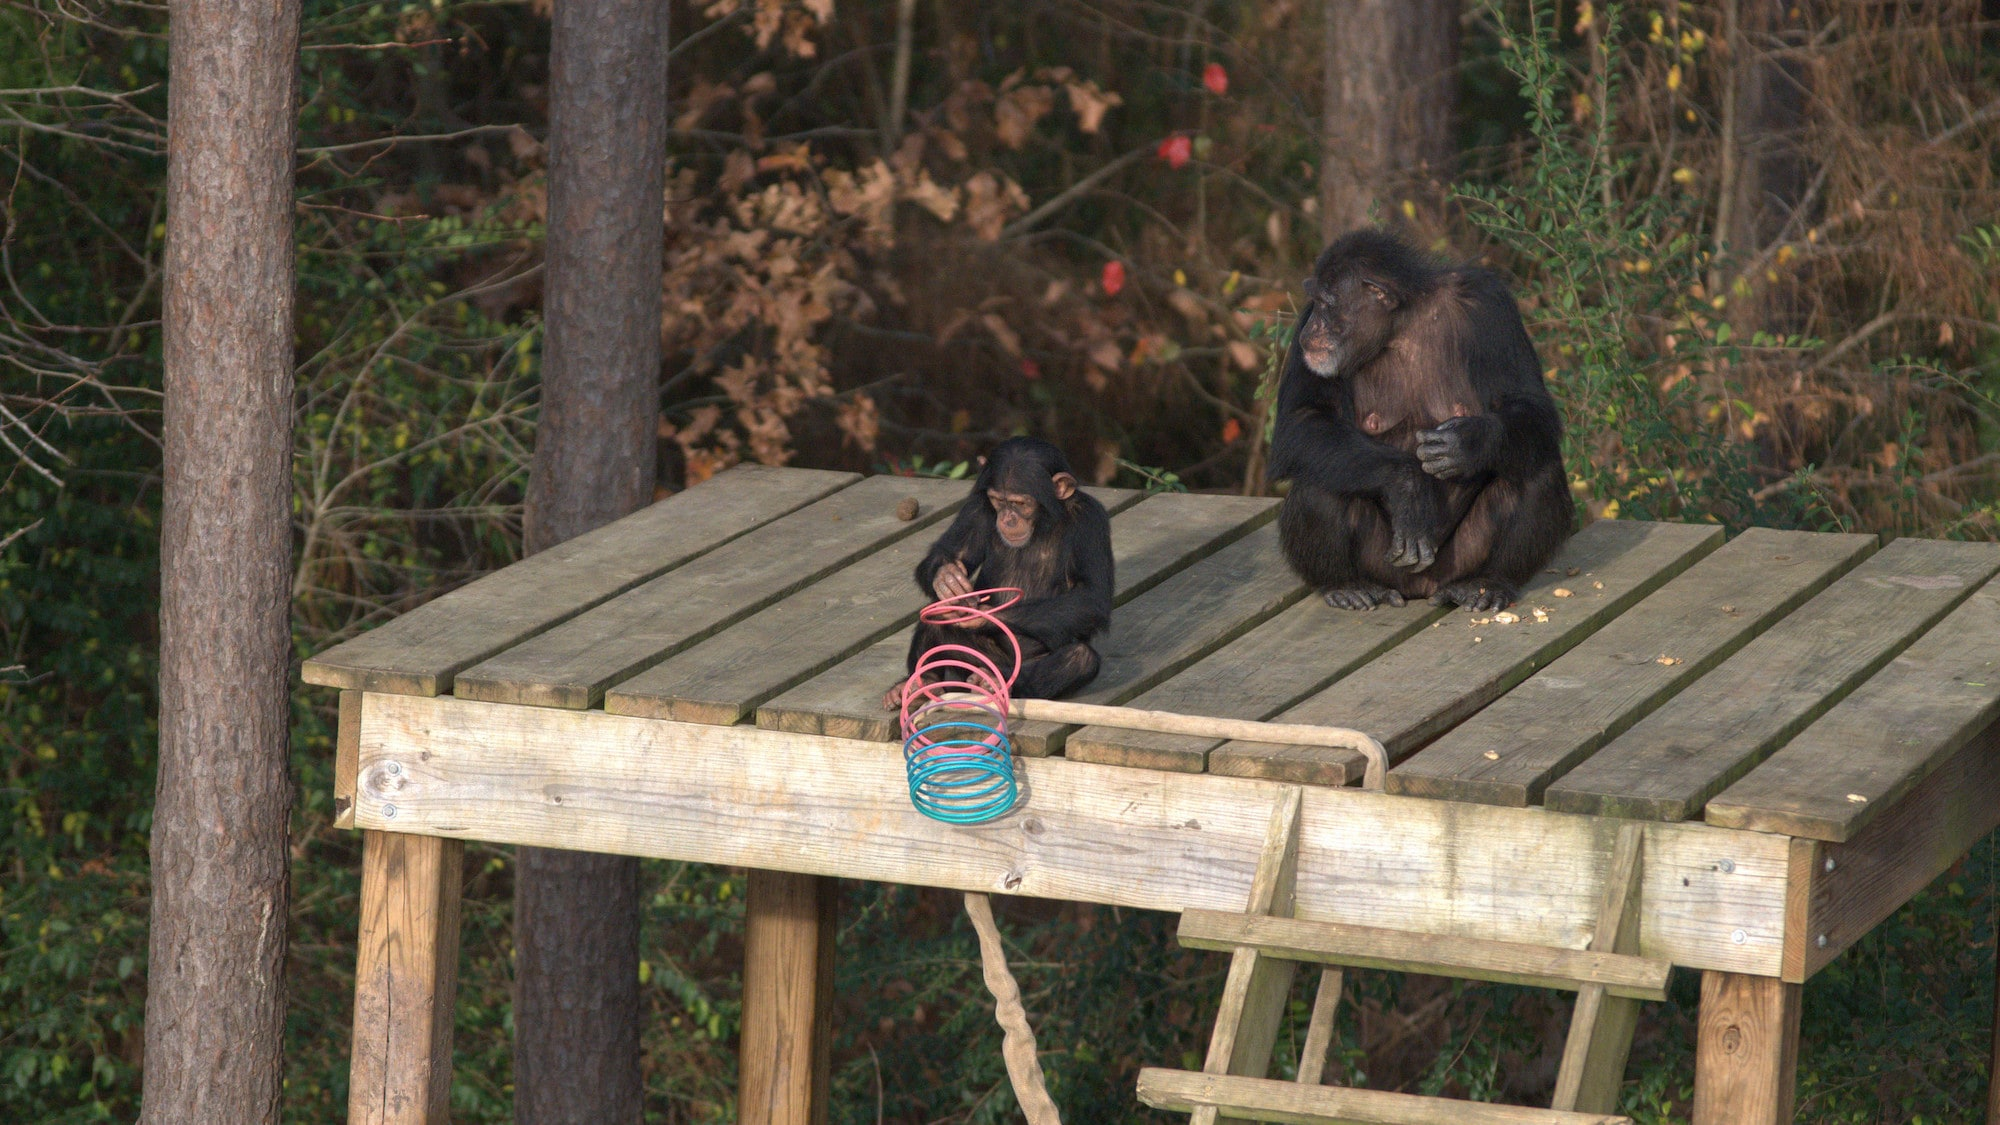 Carlee and Mum Passion on wooden platform in their forest habitat. Carlee playing with a slinky. Sara Soda's Group. (Nick Chapoy)